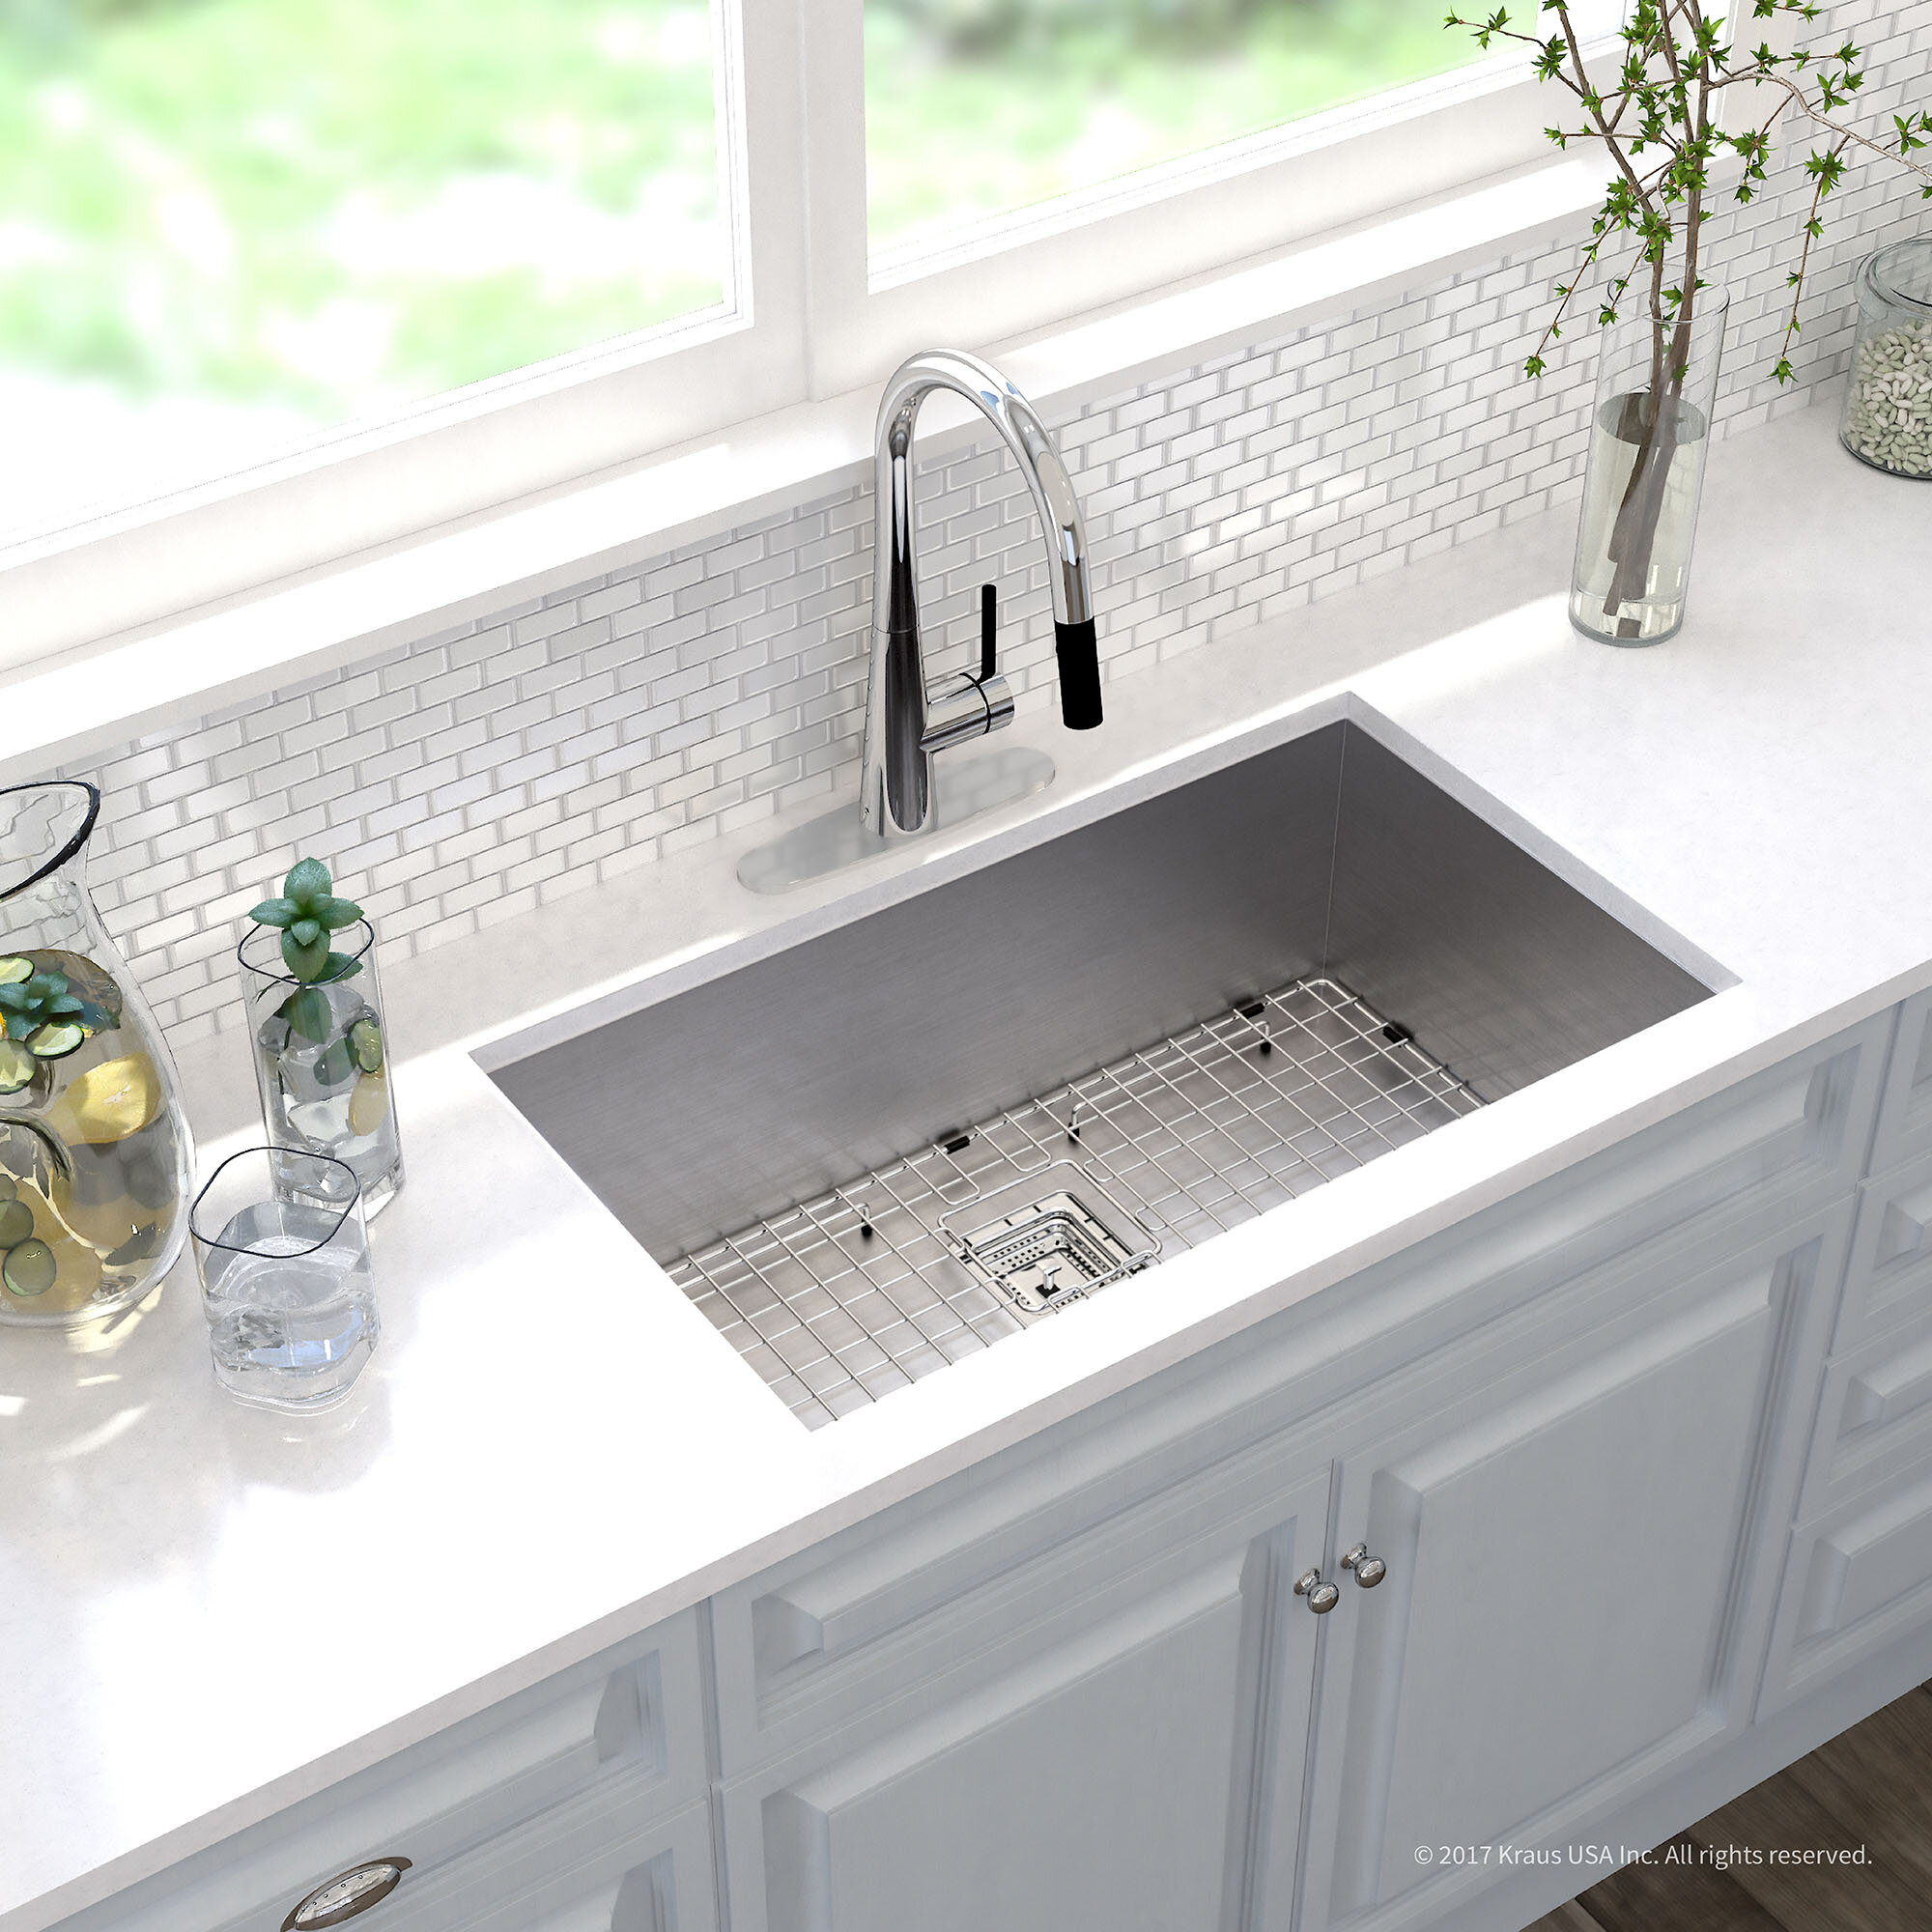 kitchen sinks au kraus pax 31 quot x 18 quot undermount kitchen sink with drain 2979